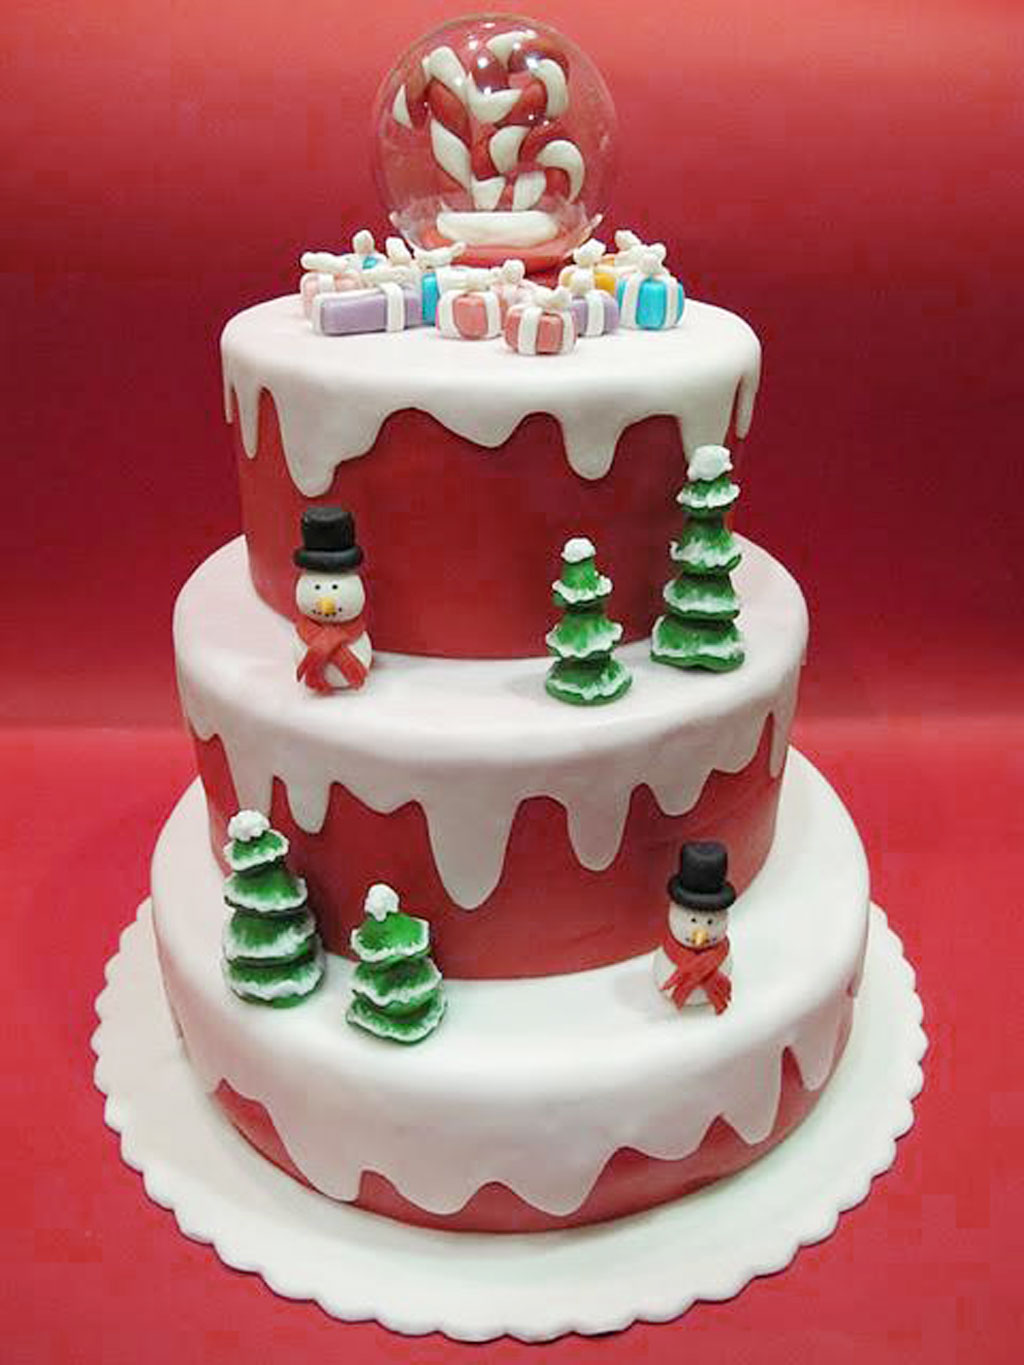 Surprising 8 Great For Christmas Birthday Cakes Photo Christmas Birthday Personalised Birthday Cards Veneteletsinfo